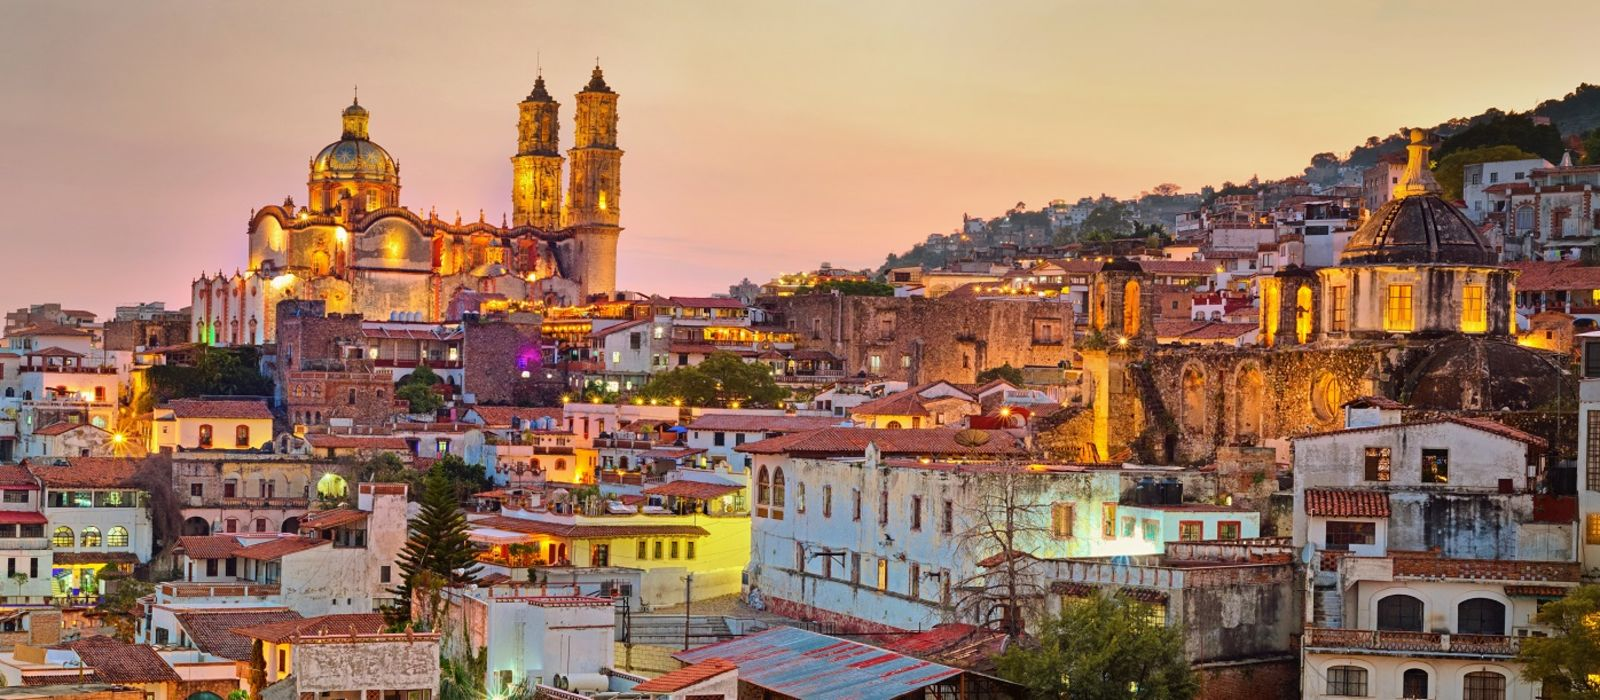 Panorama of Taxco city at sunset in Mexico - Mexico travel guide